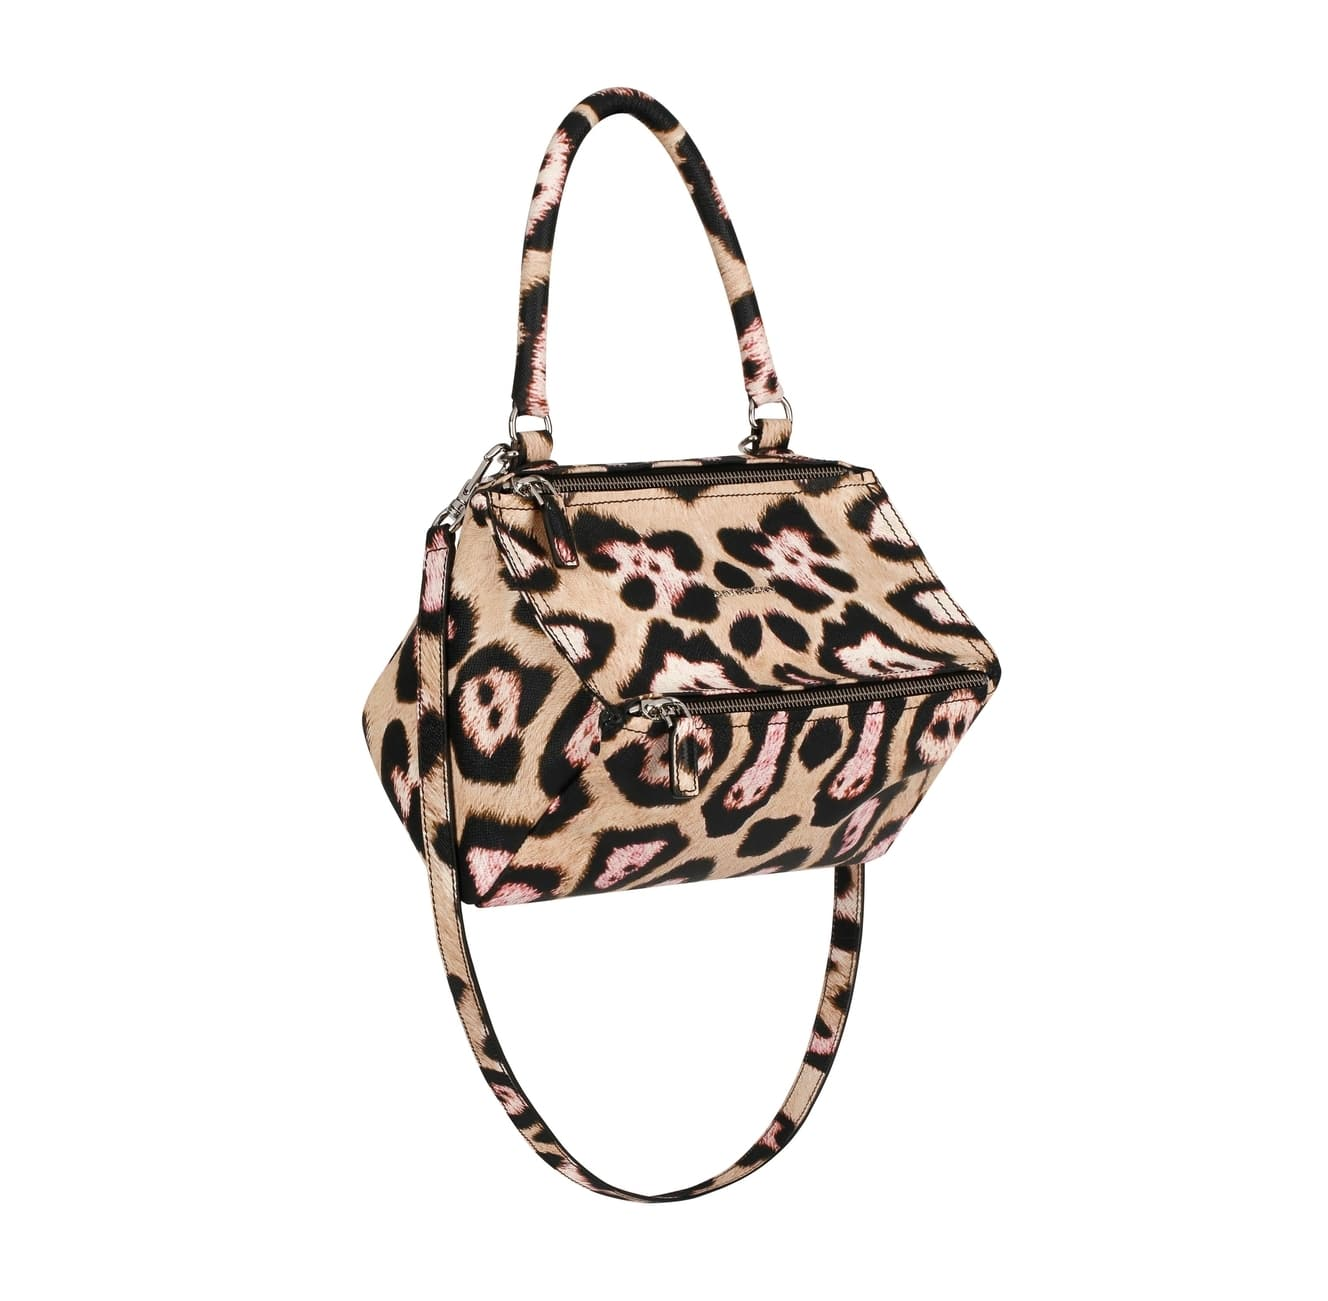 Givenchy Resort 2016 Bag Collection featuring Colored Leopard Print ... 9f8ea737e779c